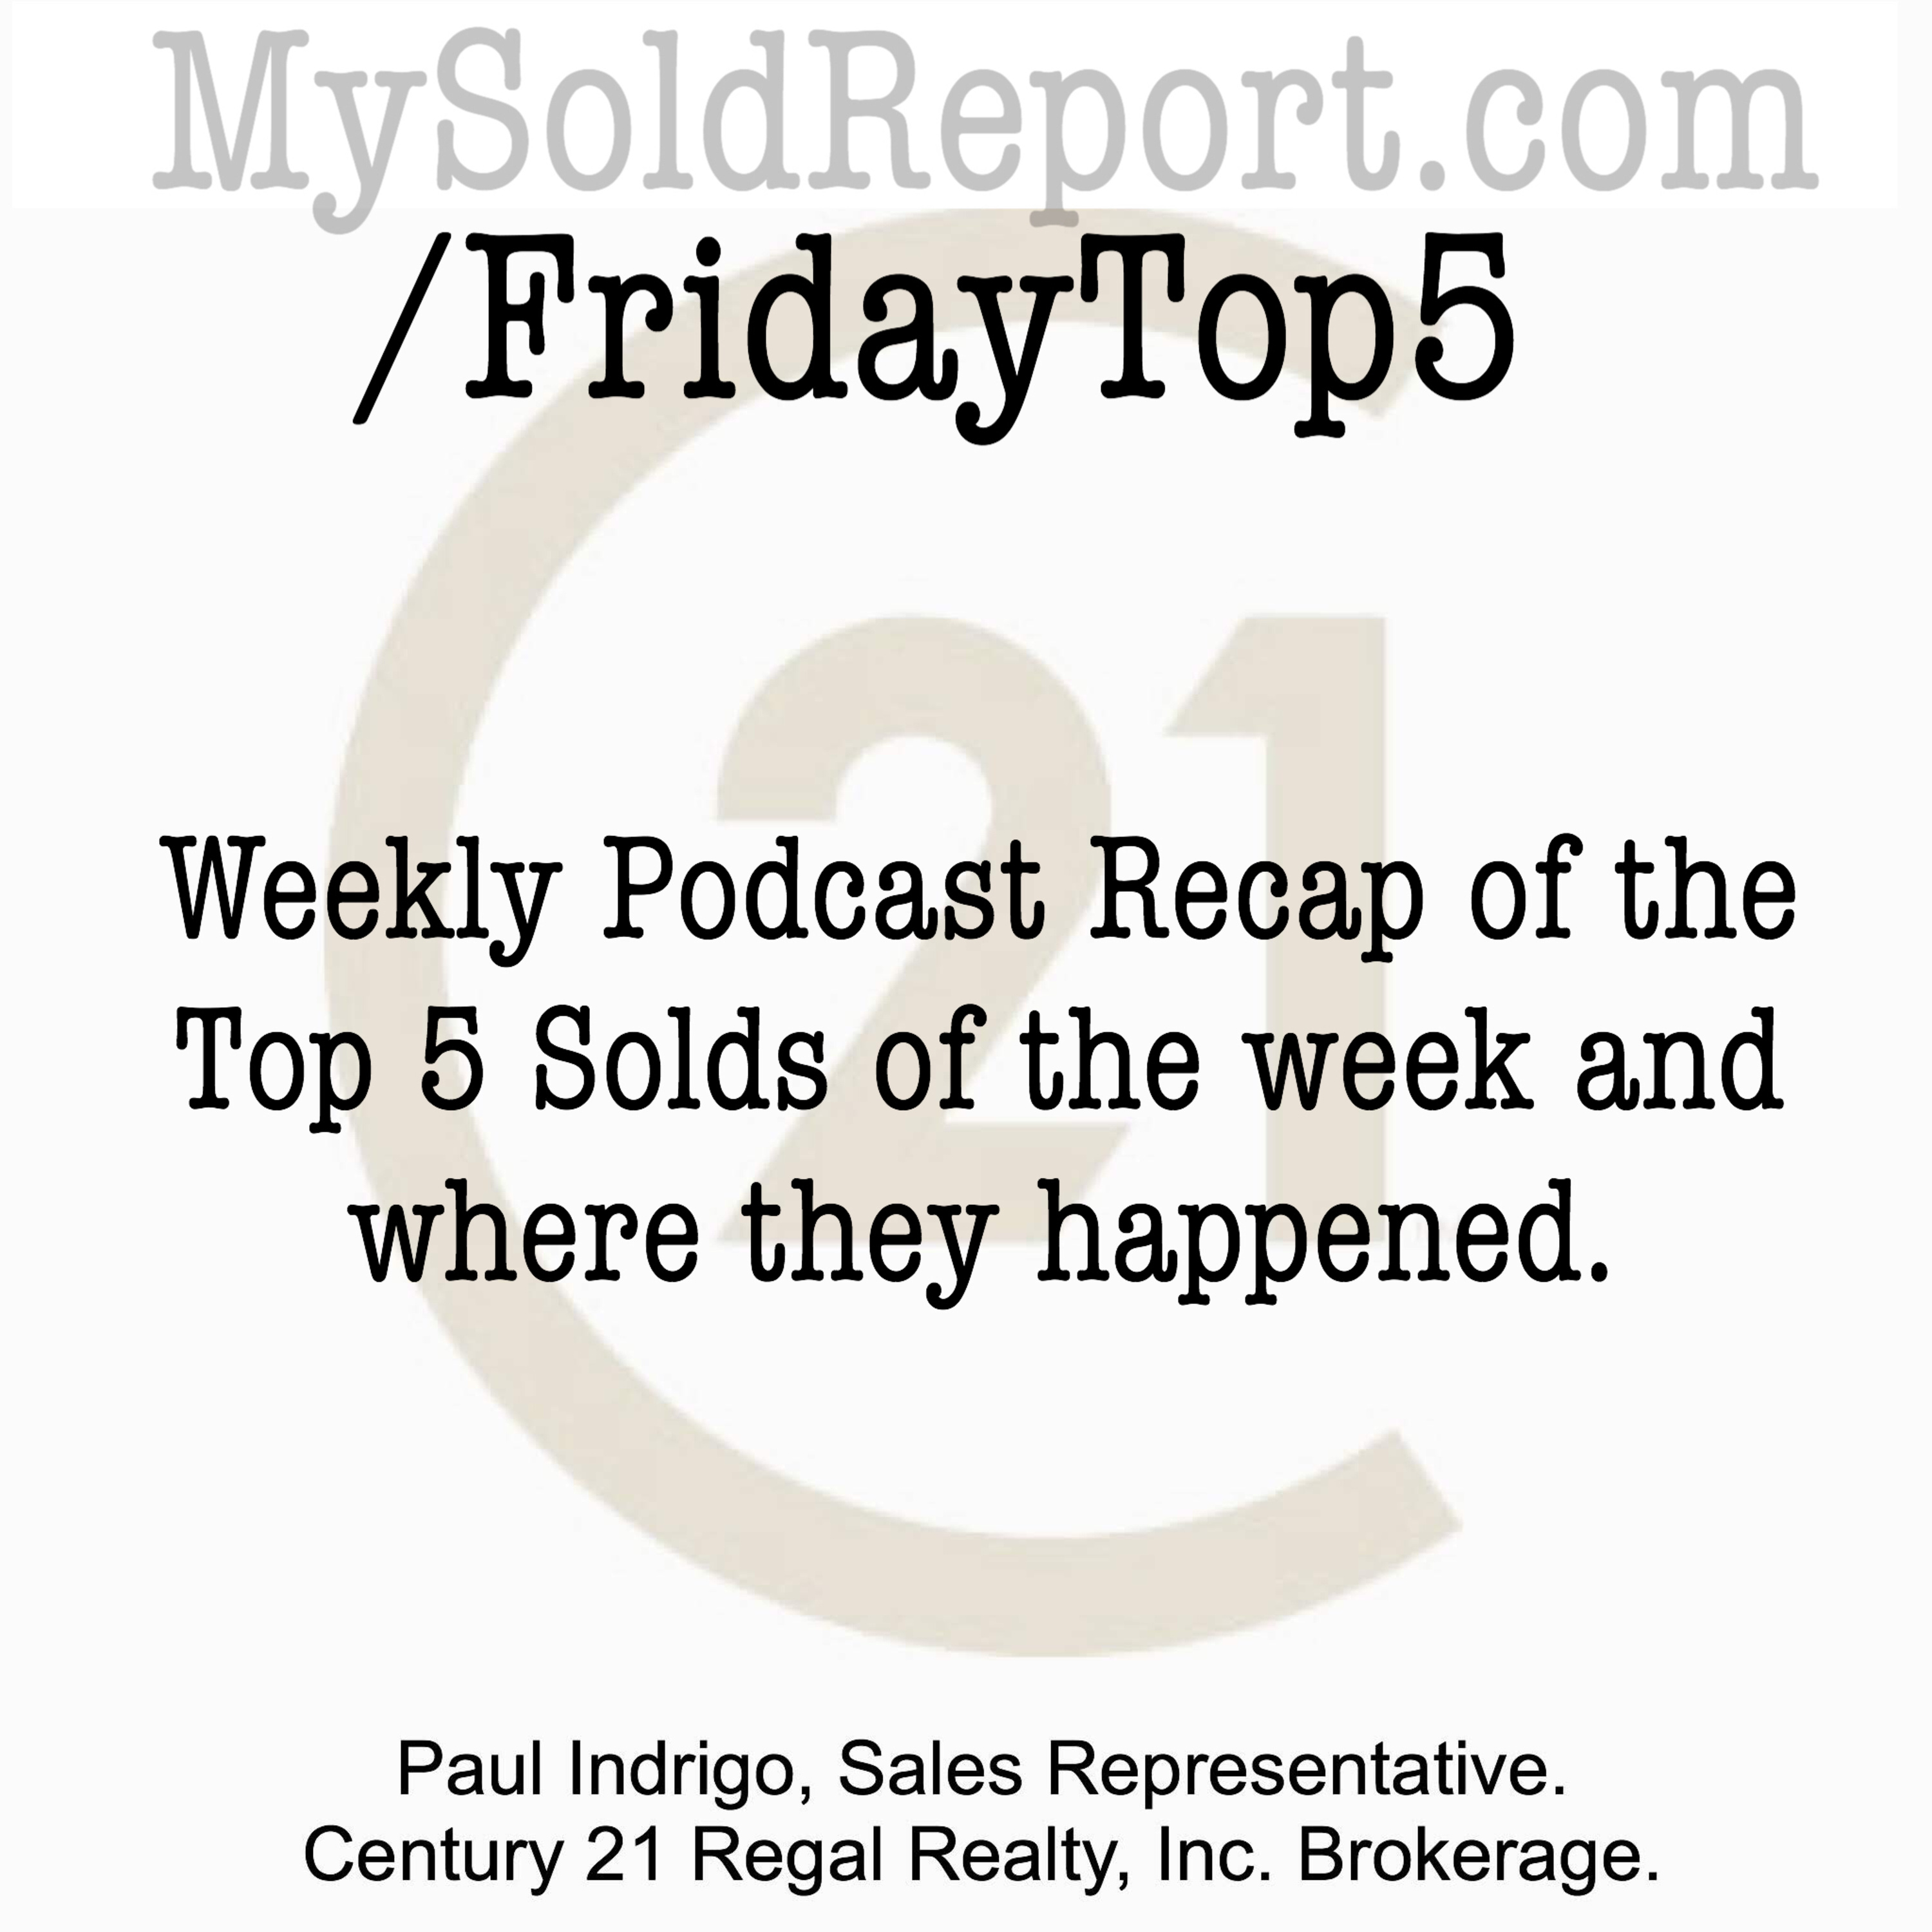 Episode 122: Friday Top 5 Solds in Toronto July 26-Aug 2